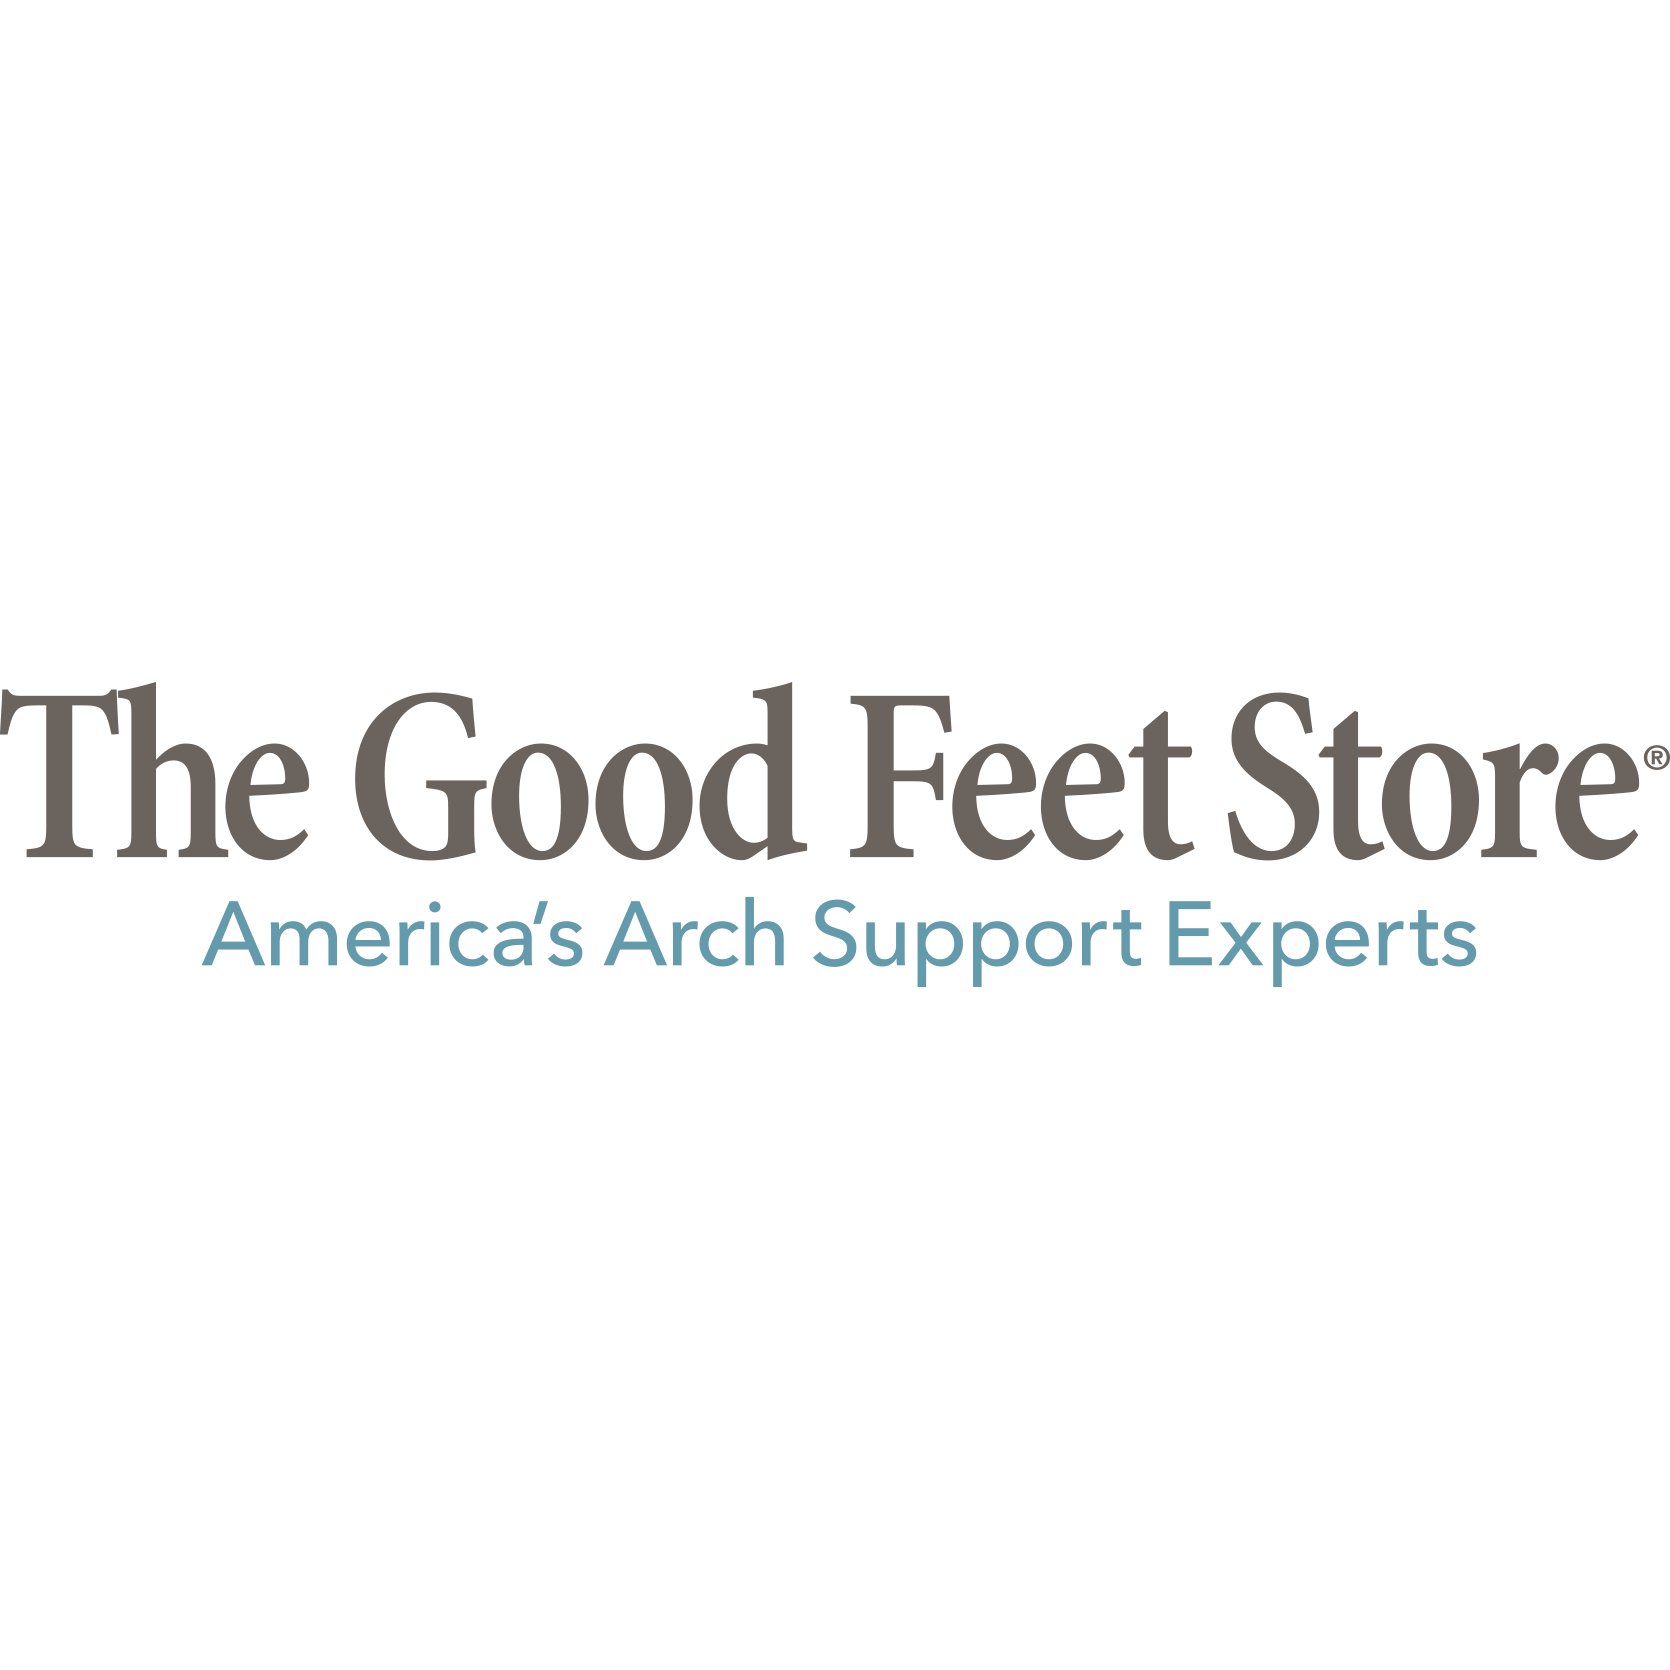 image of The Good Feet Store